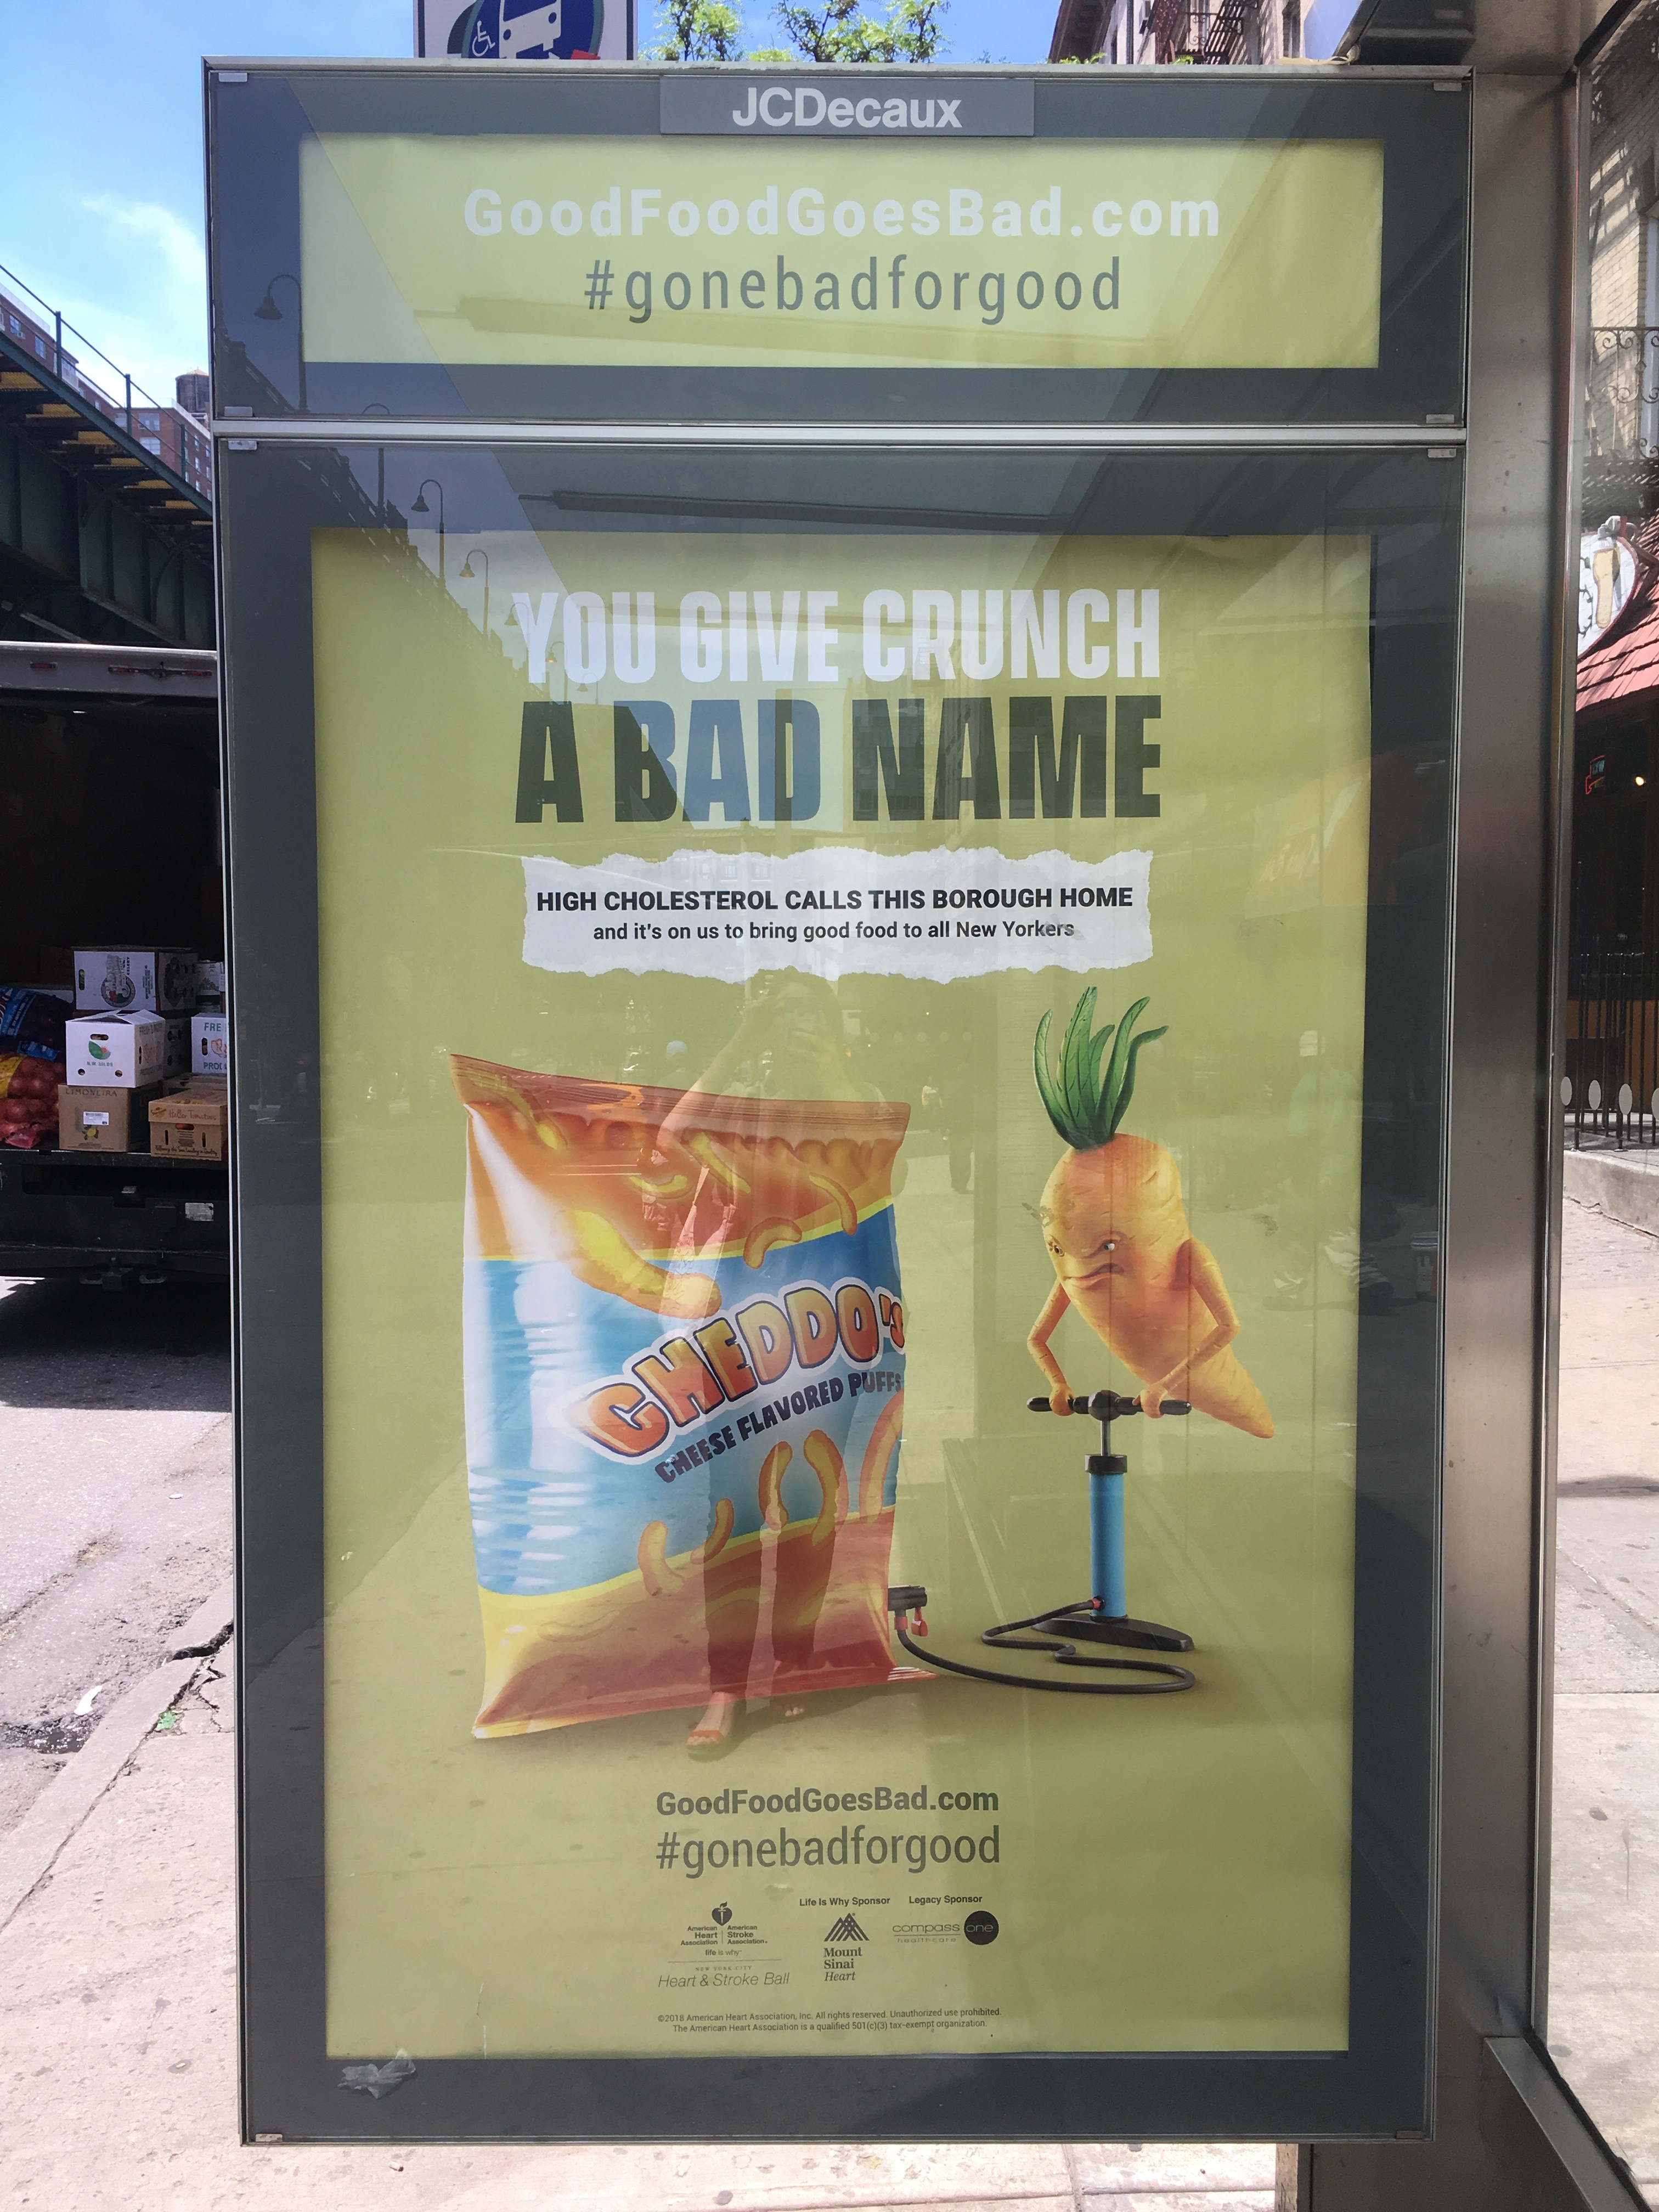 Good Food Goes Bad advertisement